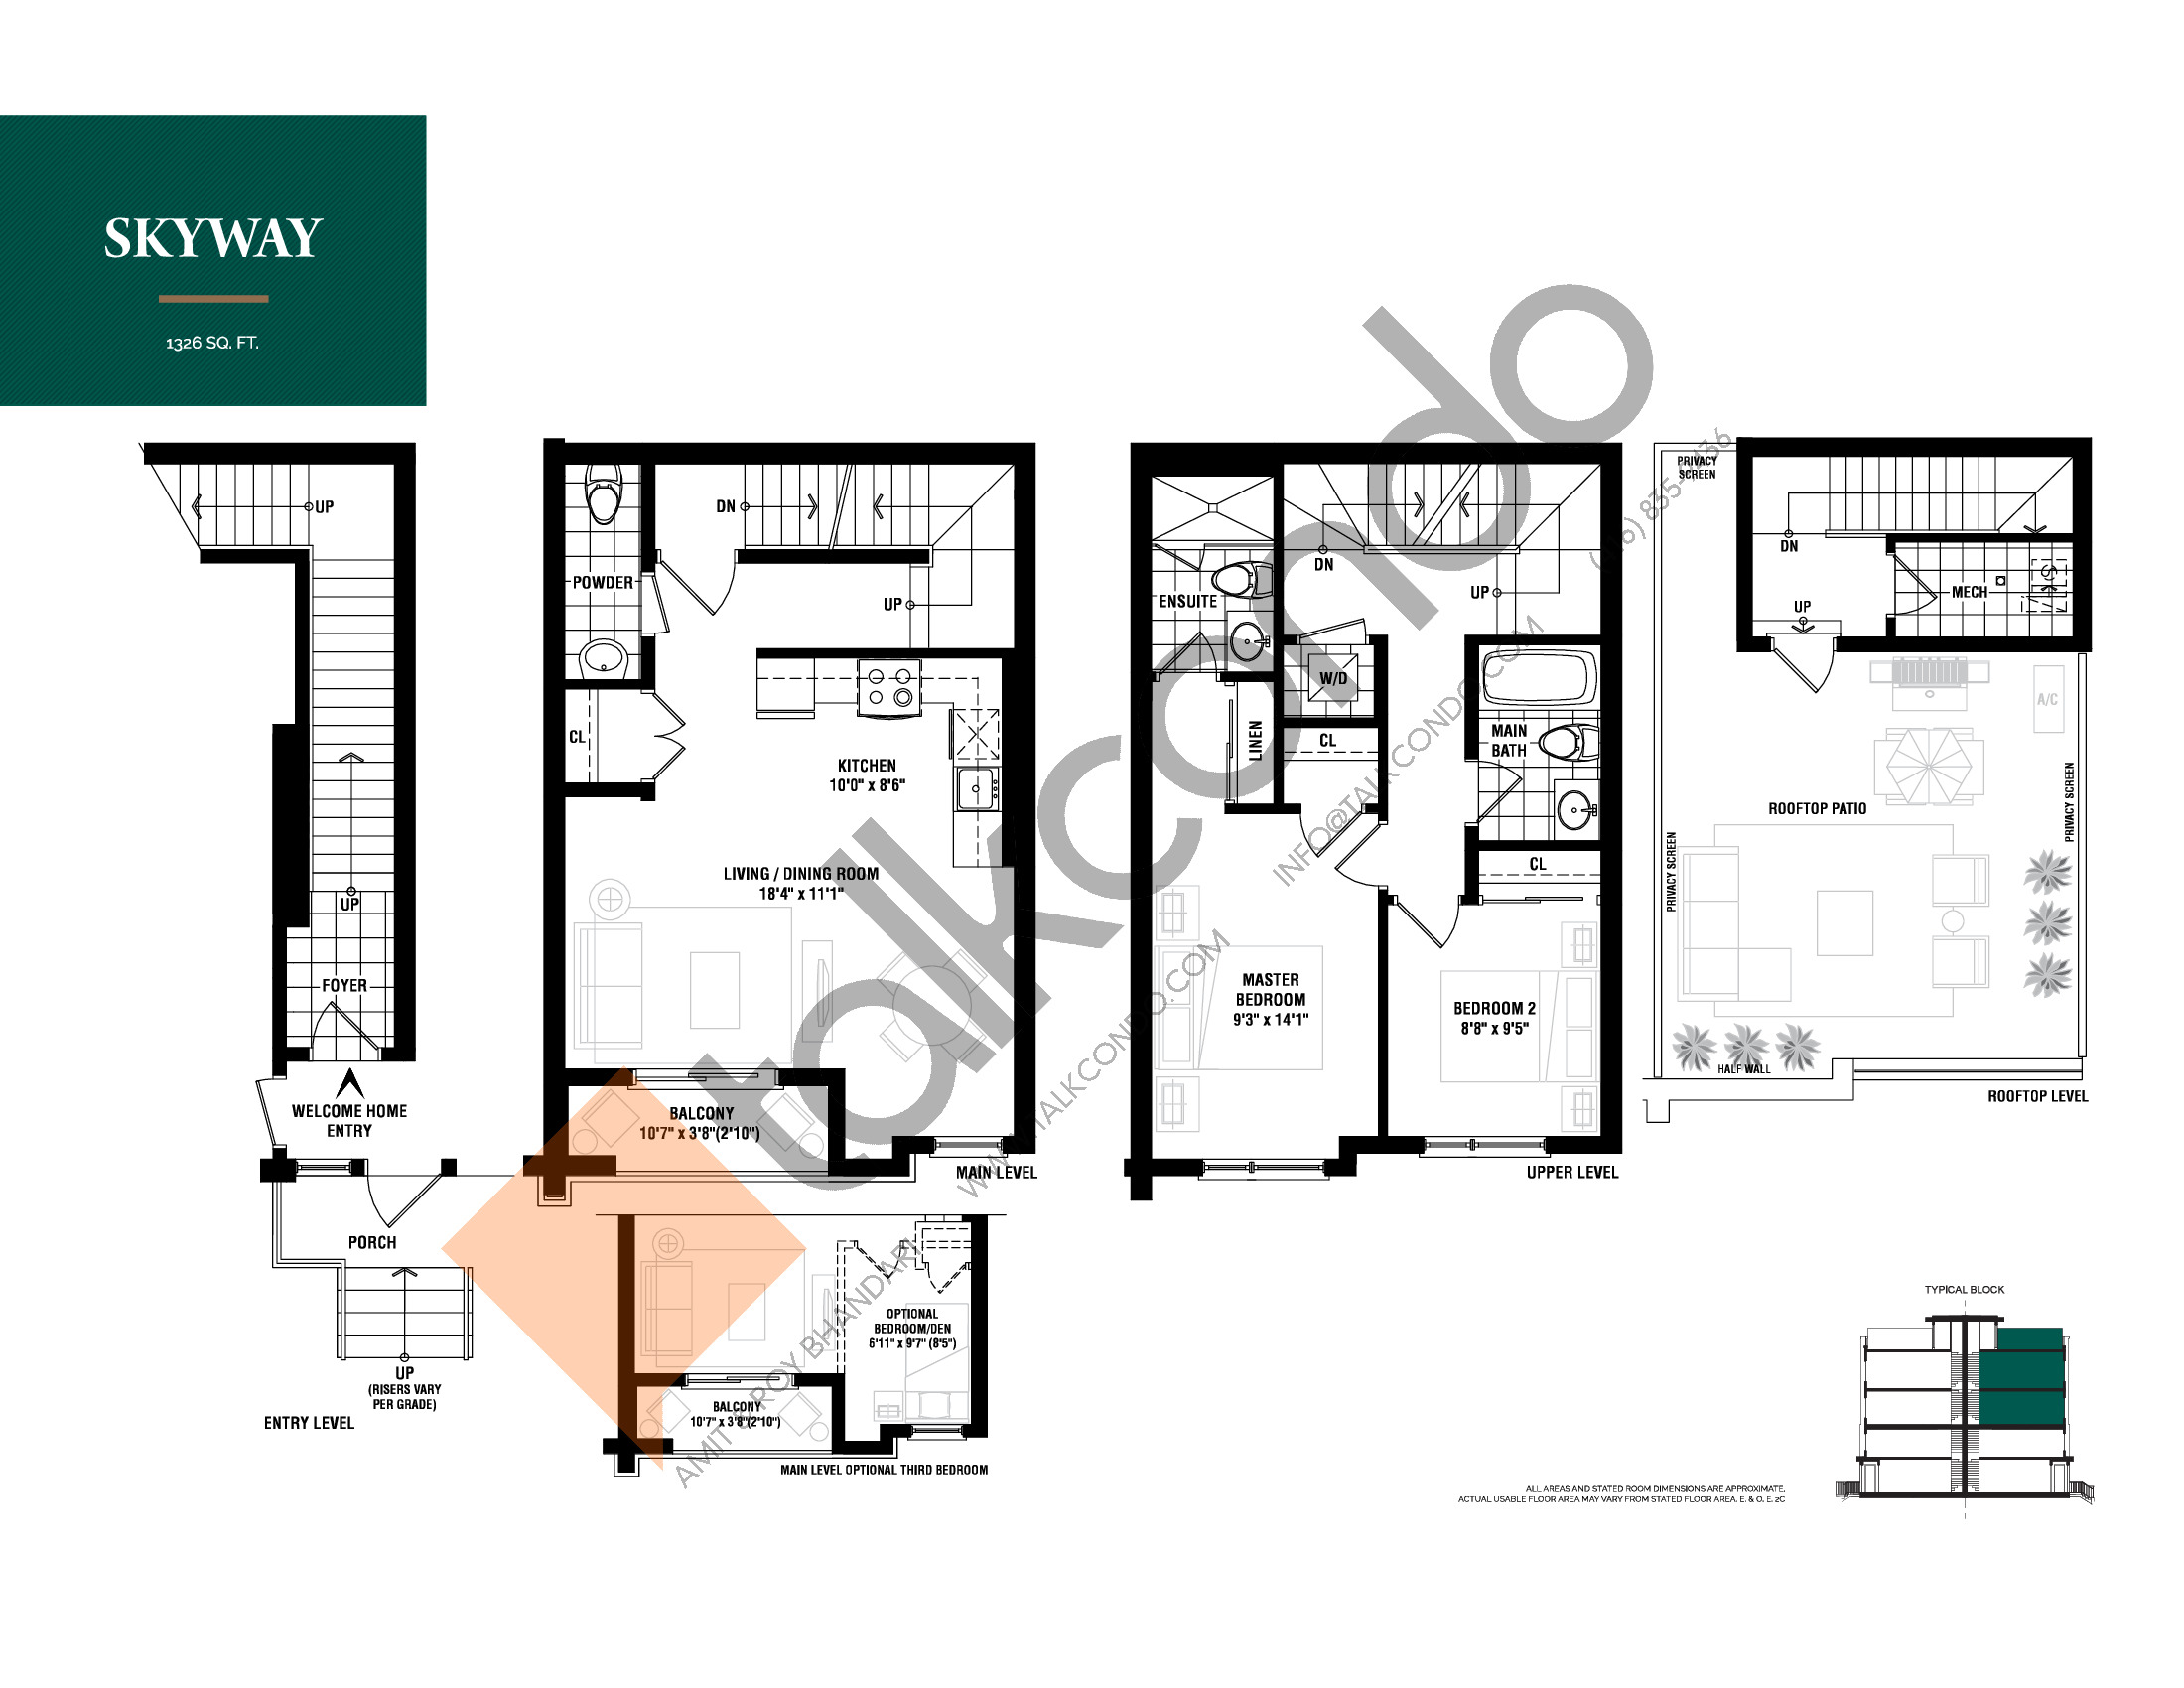 Skyway Floor Plan at The Way Urban Towns - 1326 sq.ft